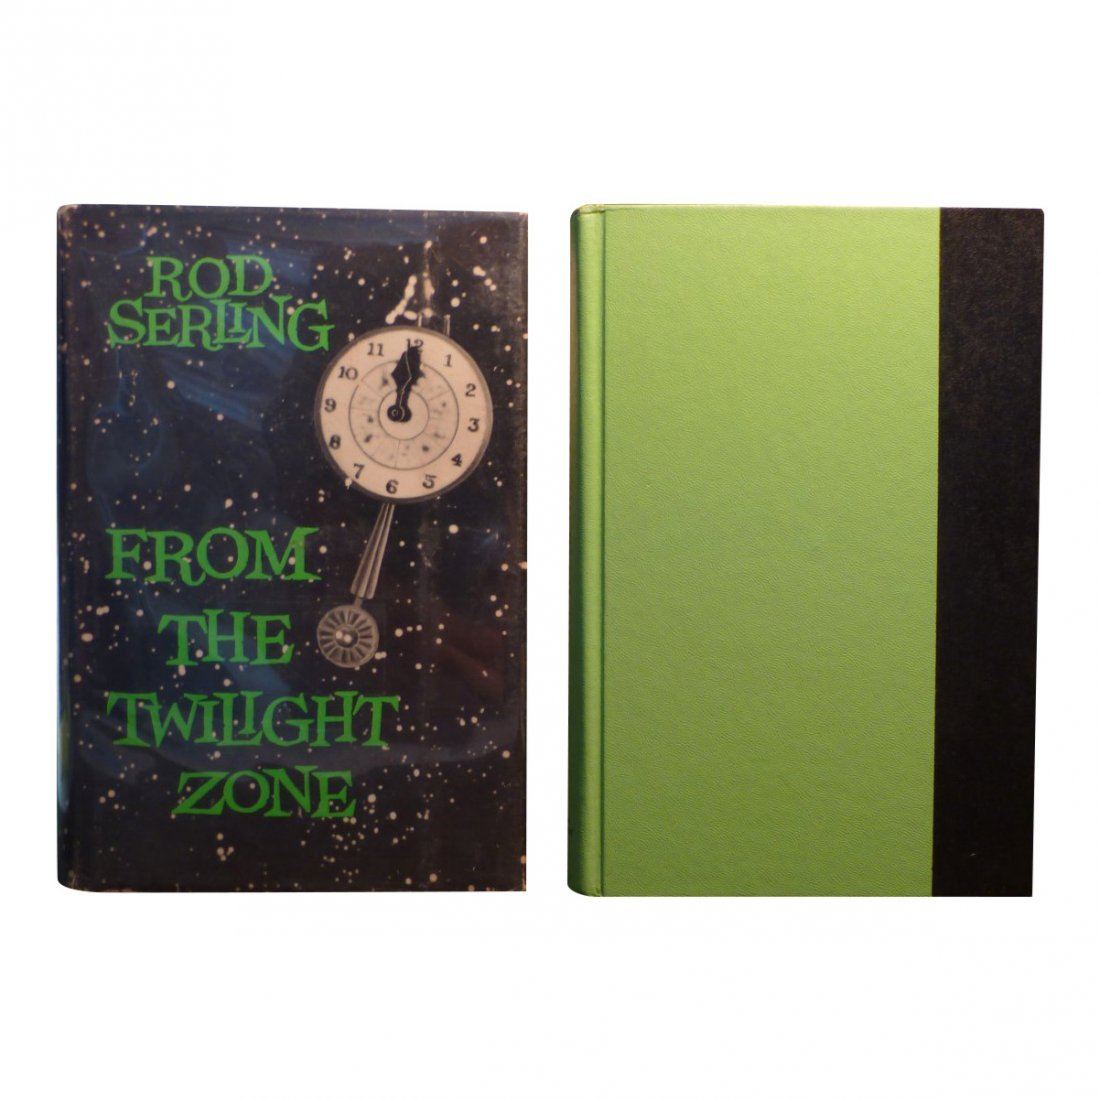 Rod Serling: From the Twilight Zone - Signed